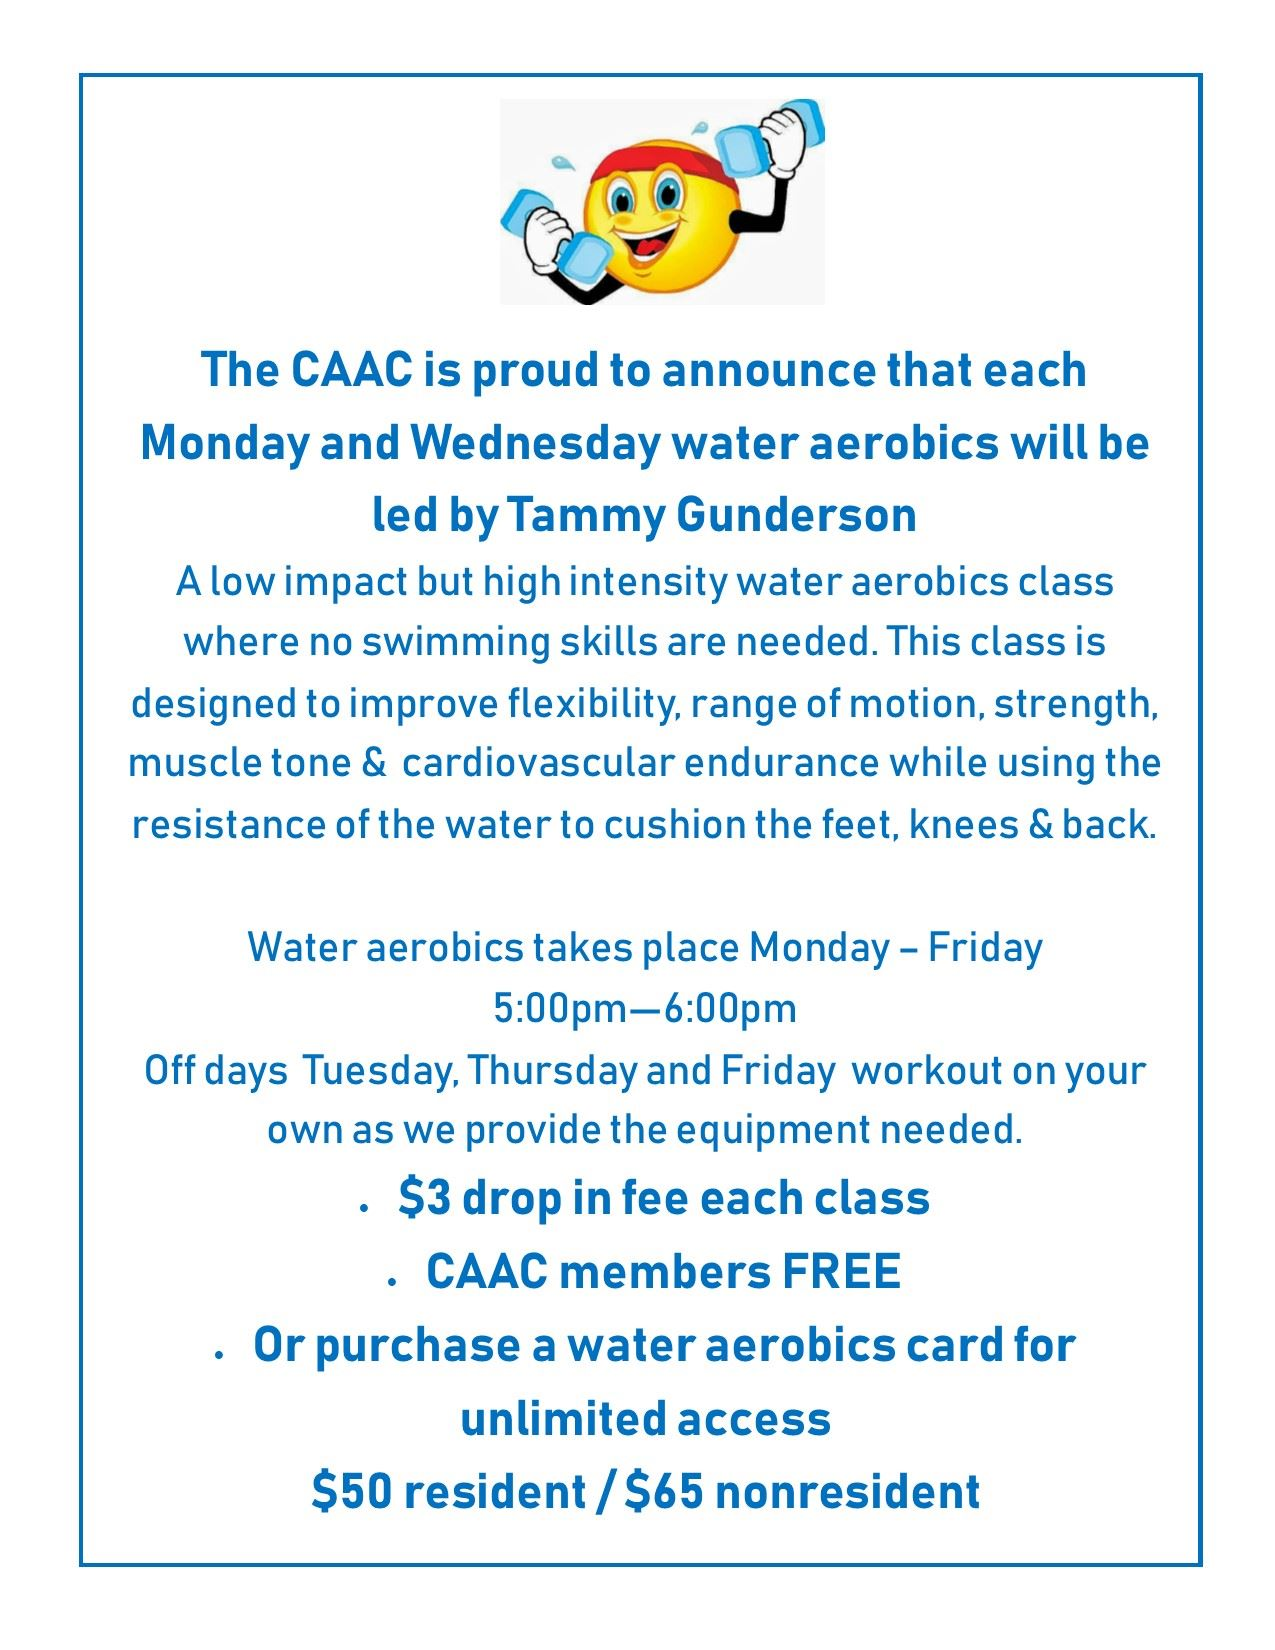 Water Aerobics at the CAAC